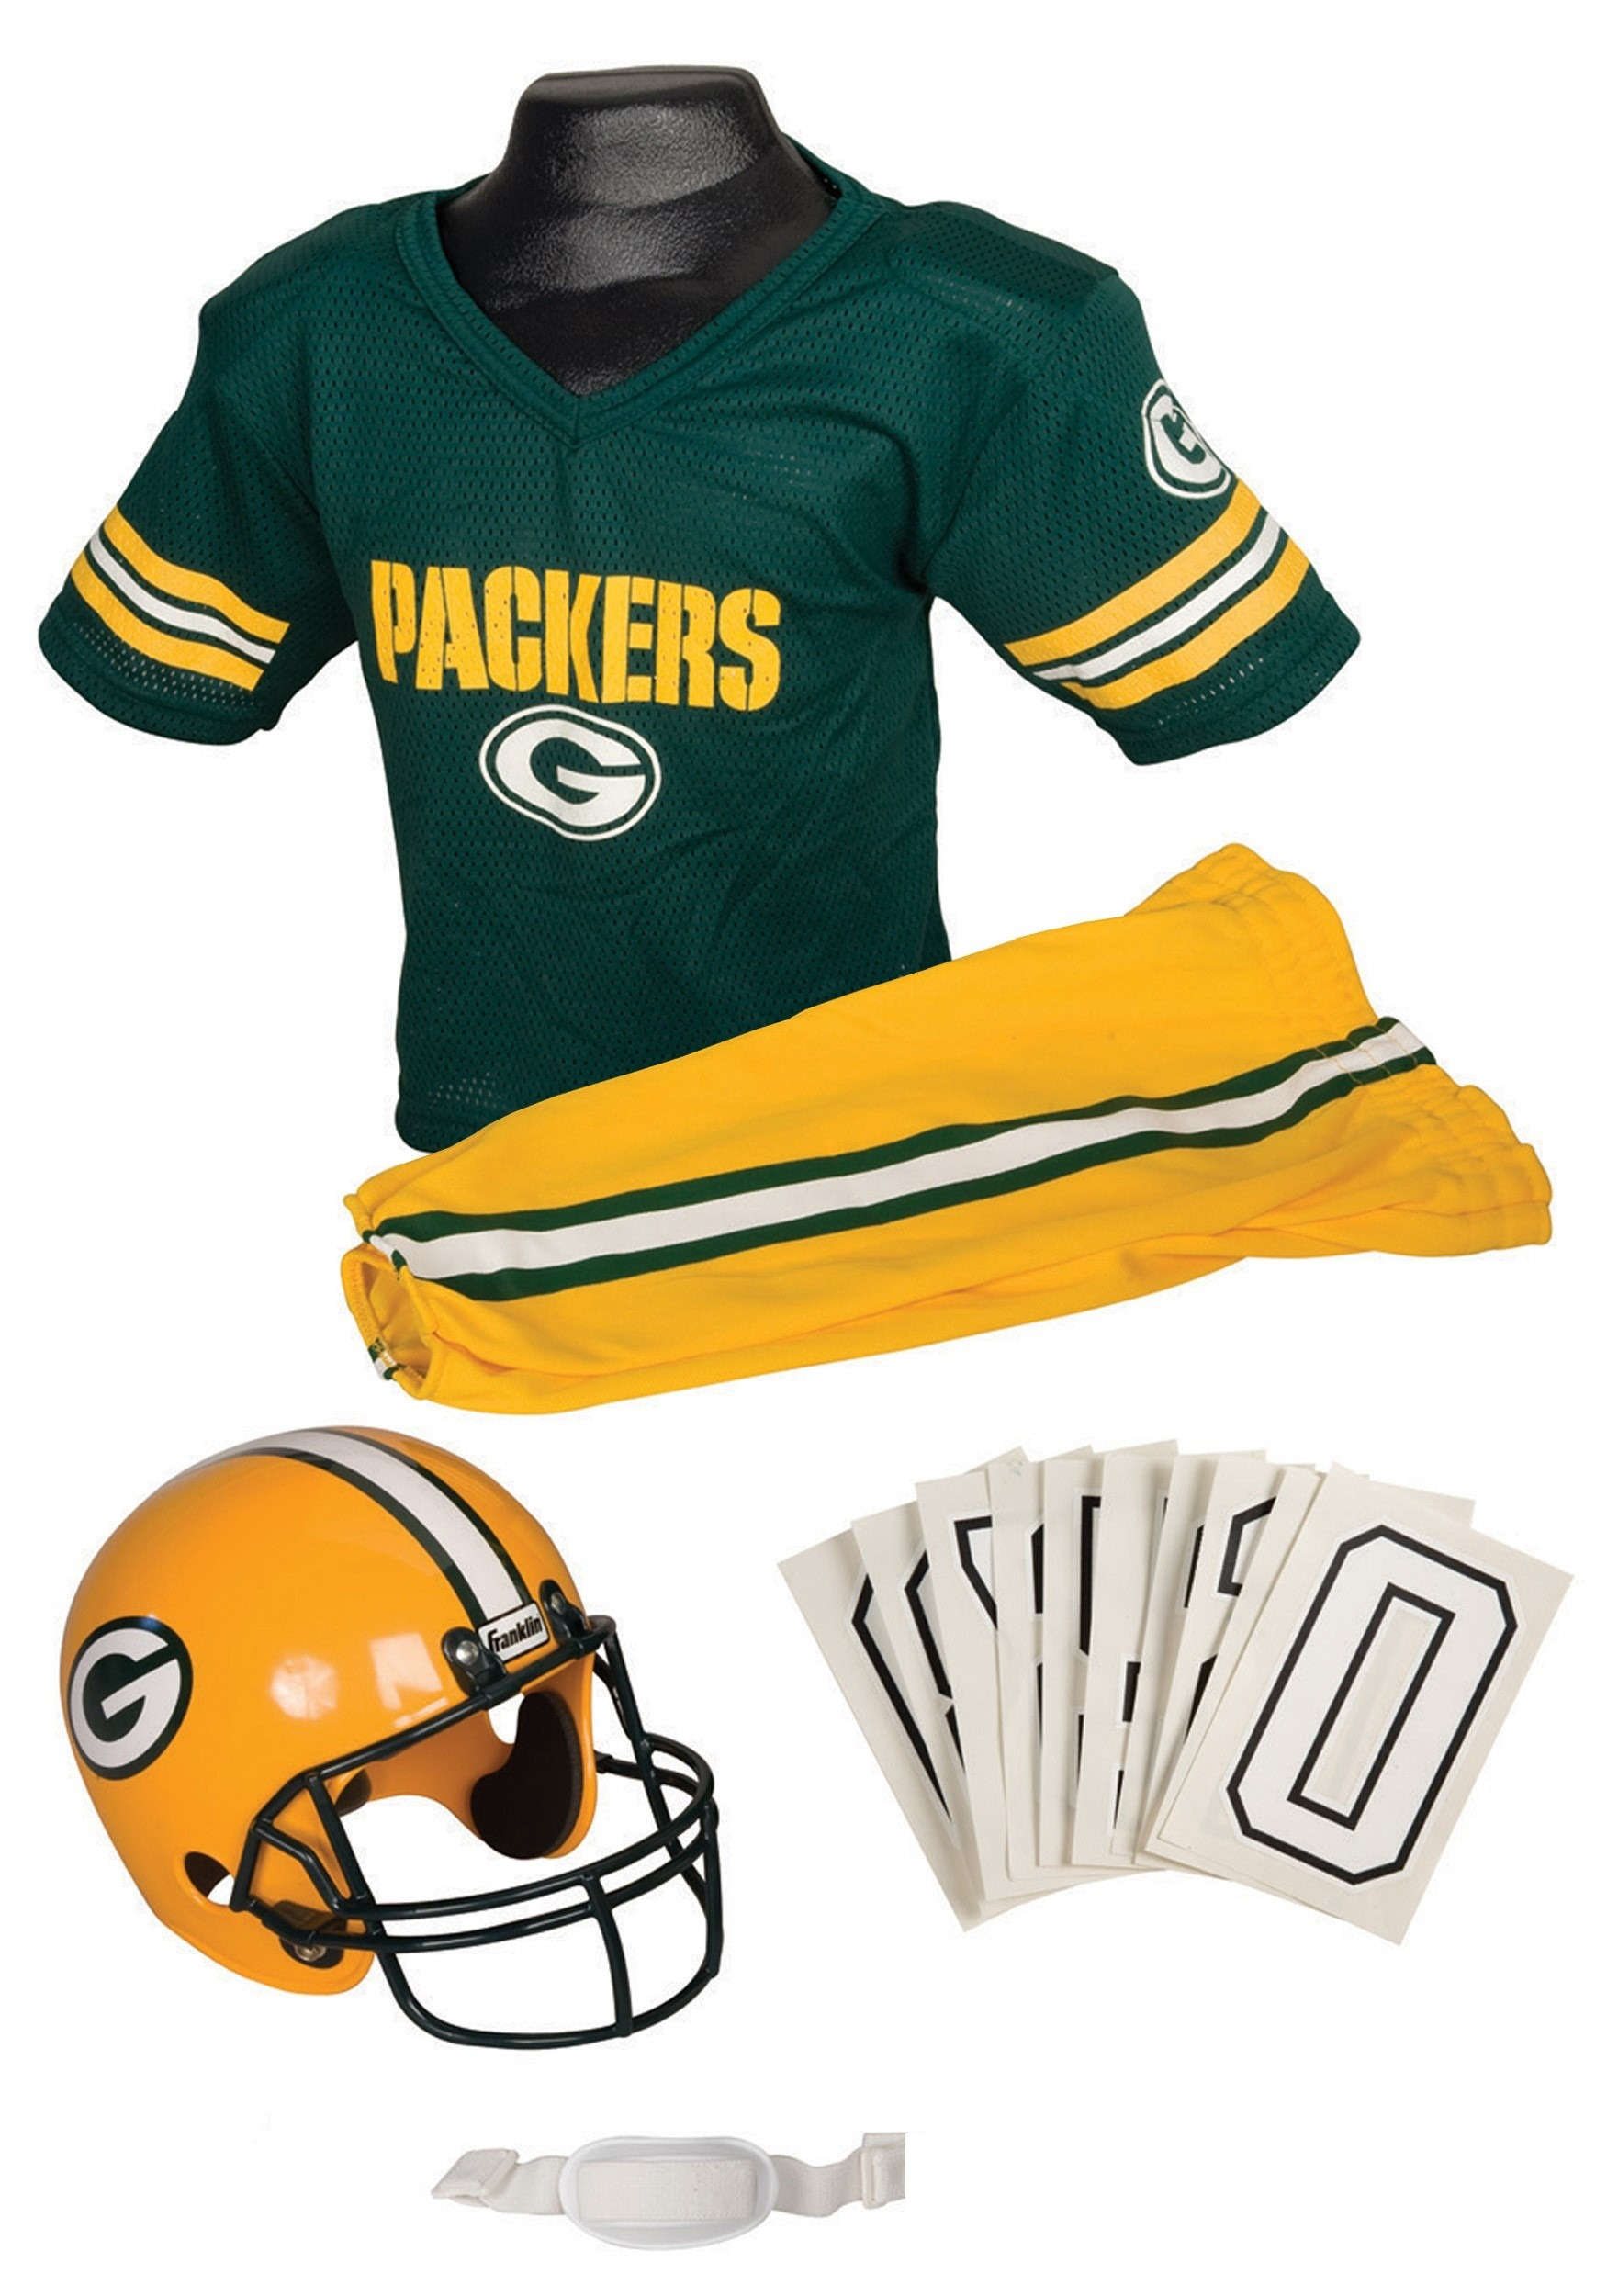 NFL Packers Uniform Costume FA15700F05